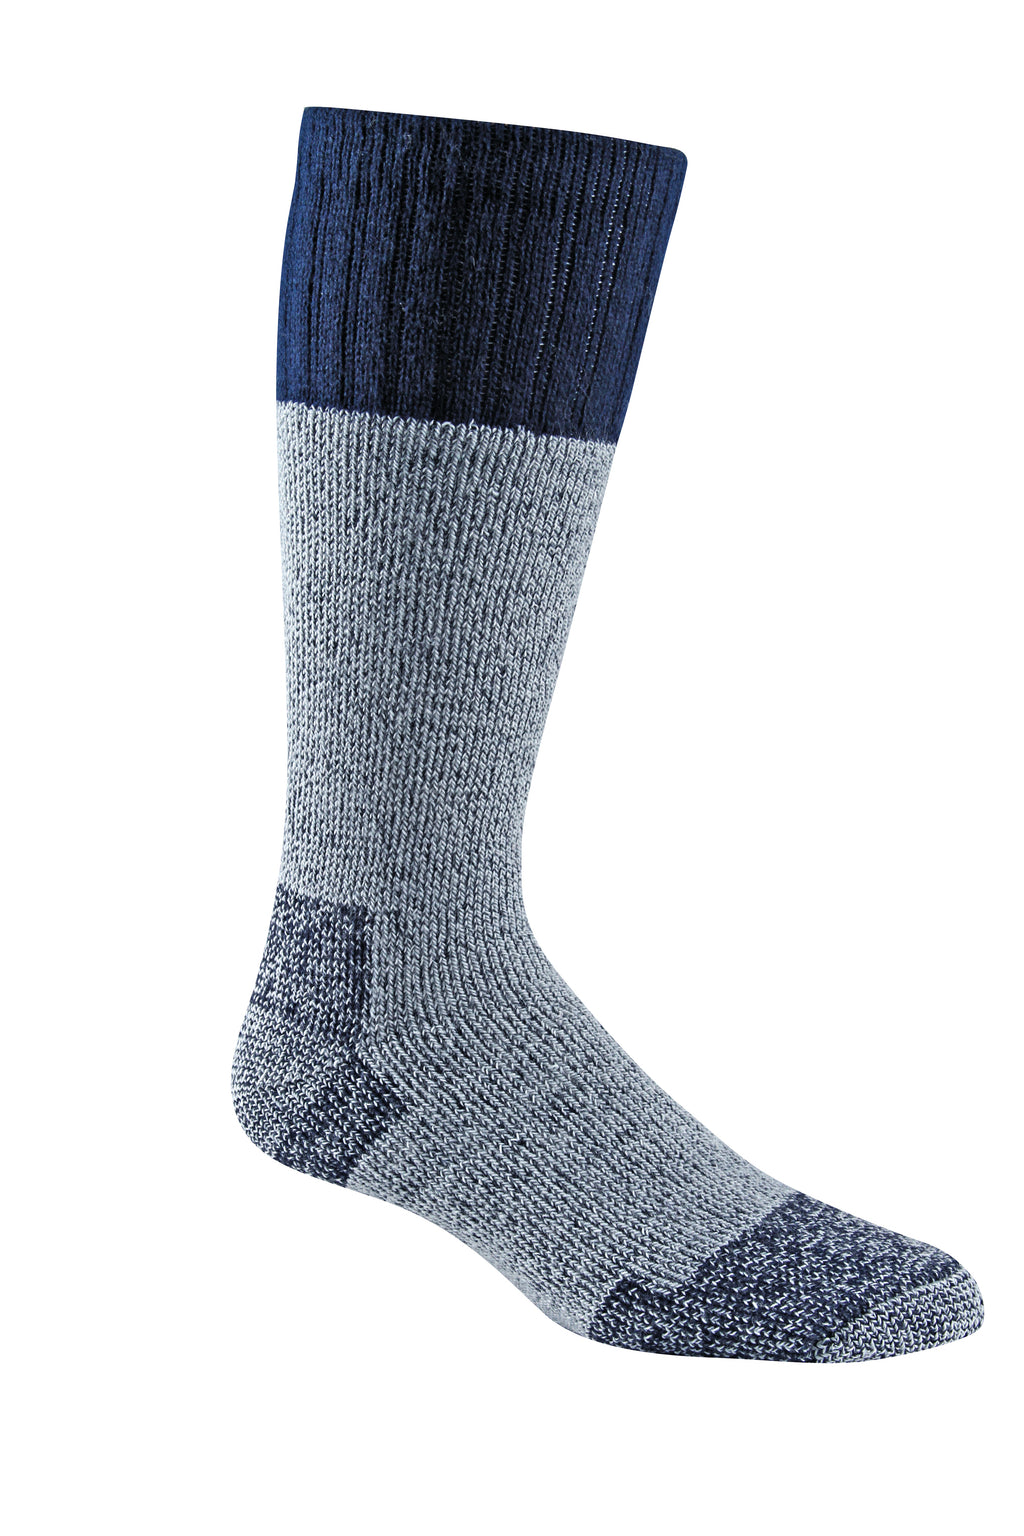 Fox River Wick Dry® Outlander Adult Cold Weather Heavyweight Mid-Calf Socks